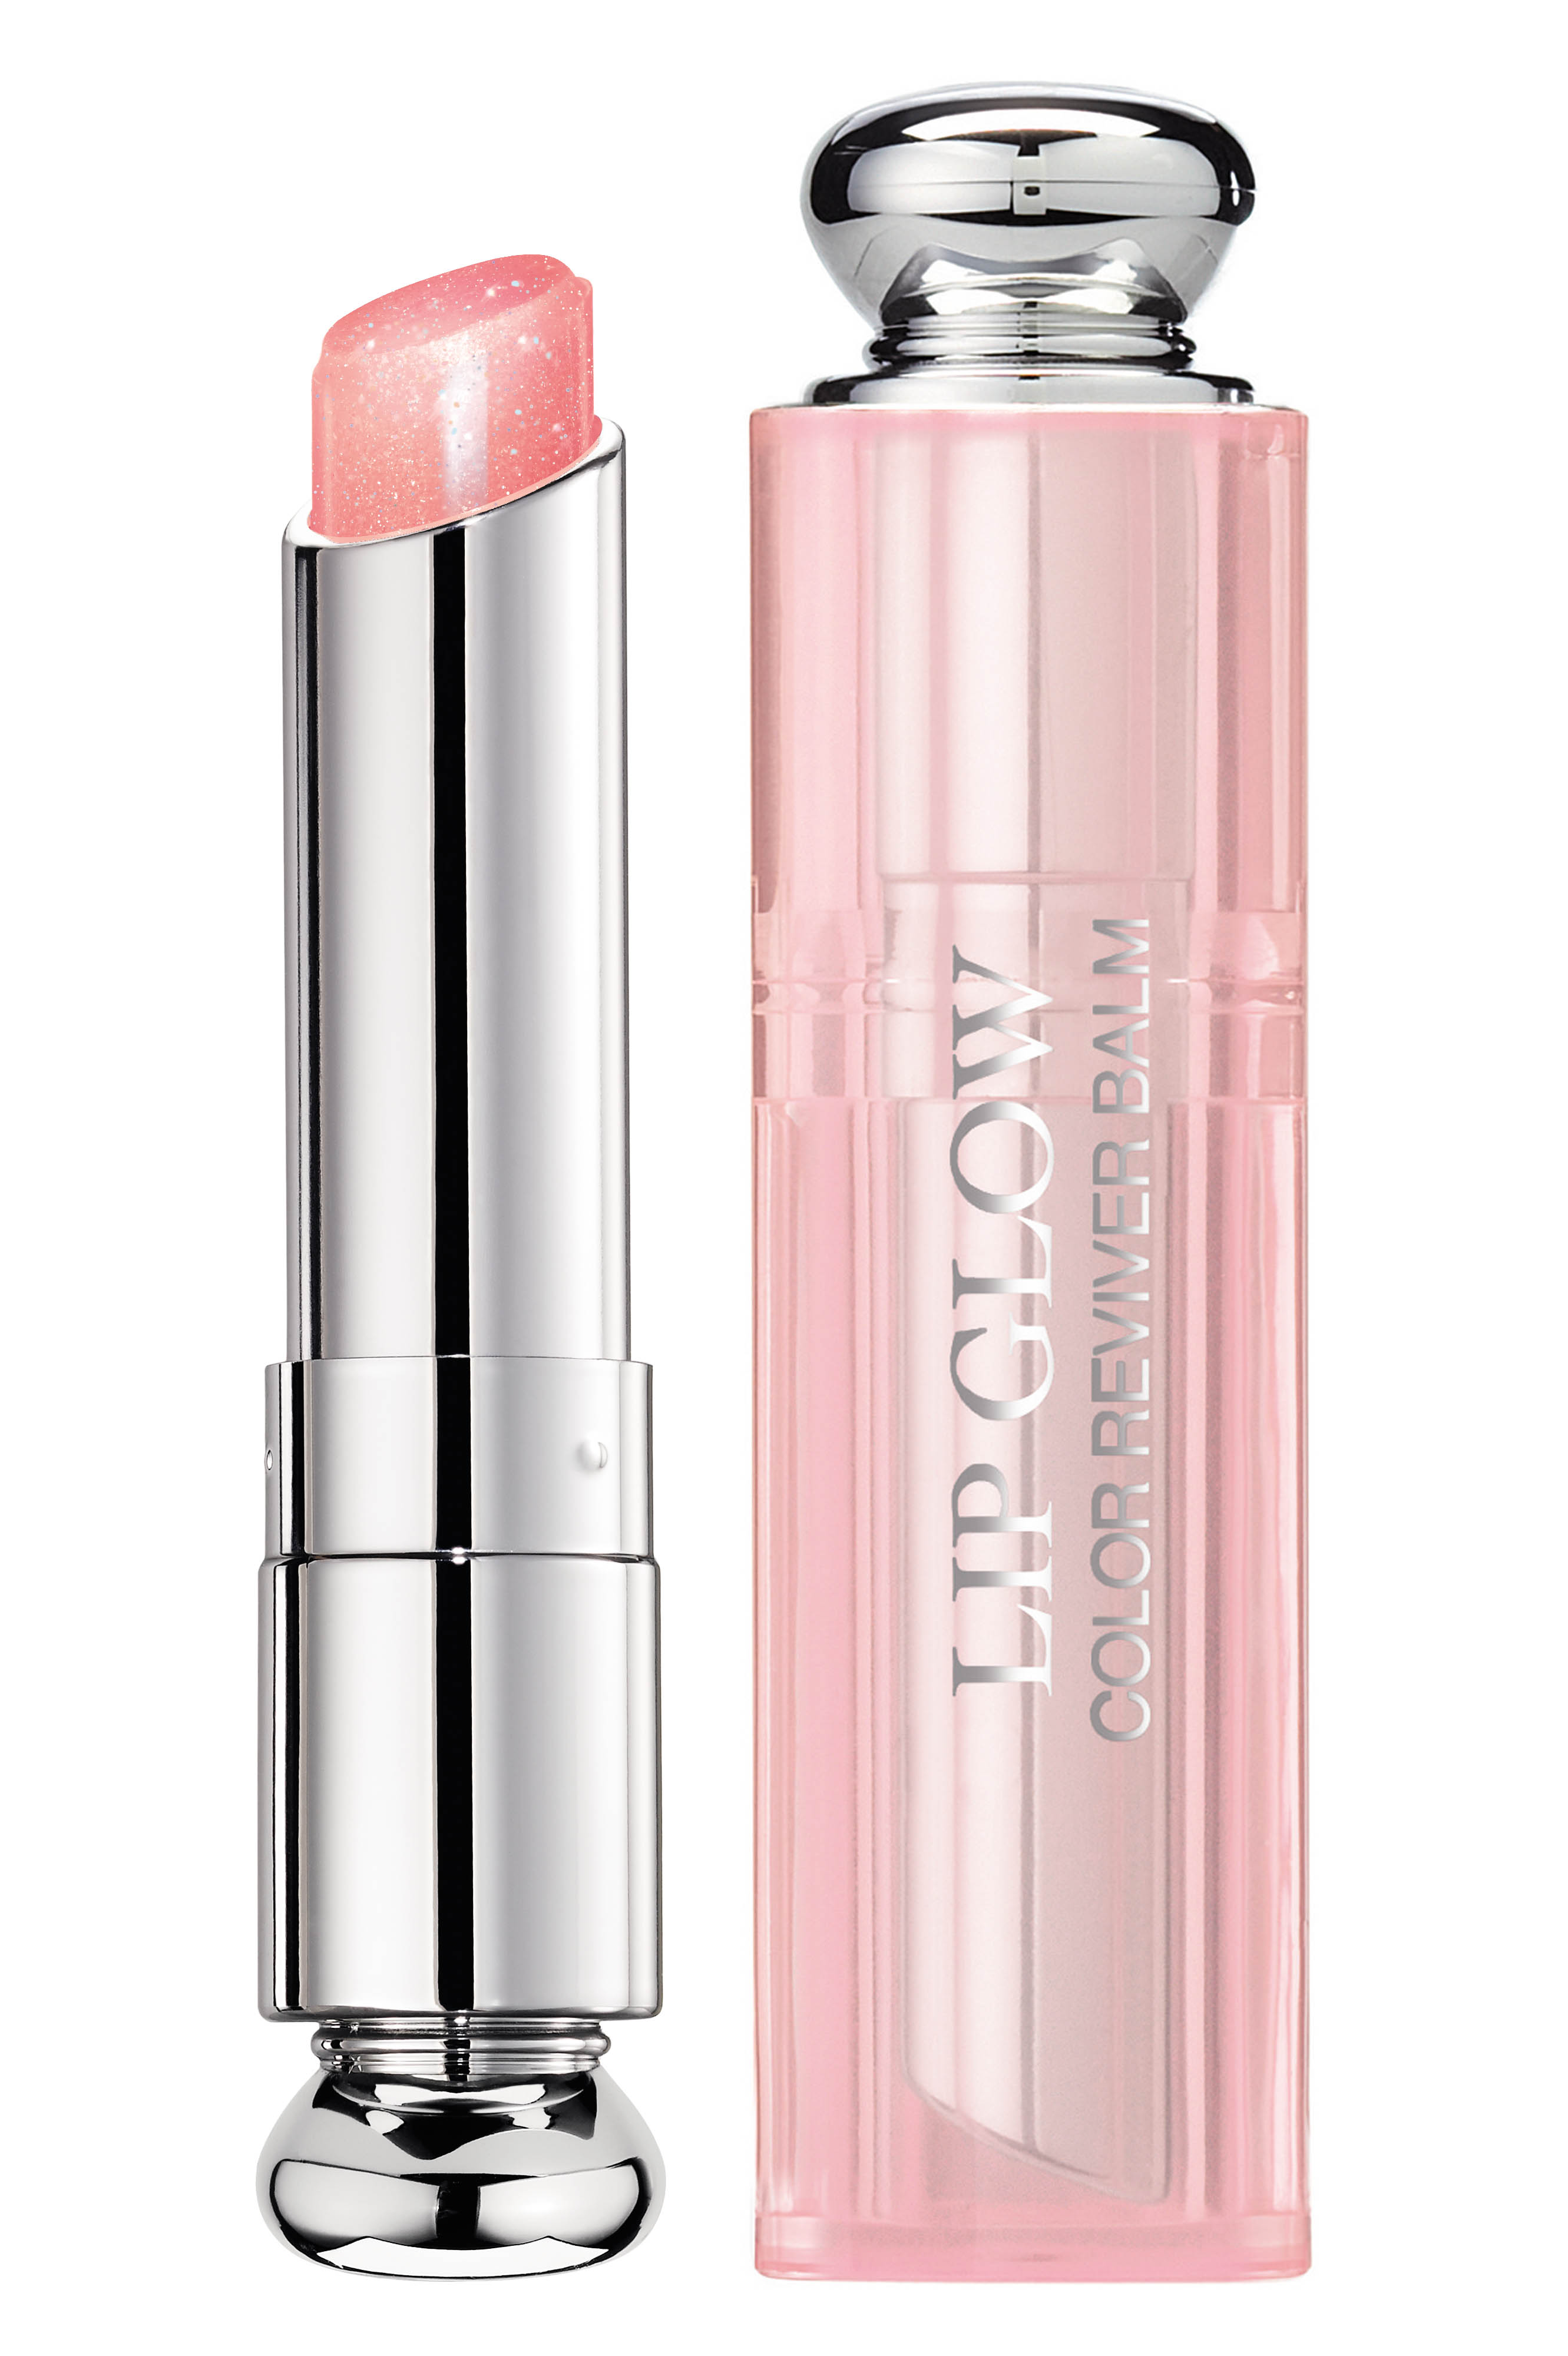 Dior Addict Lip Glow in Holo Pink by Dior